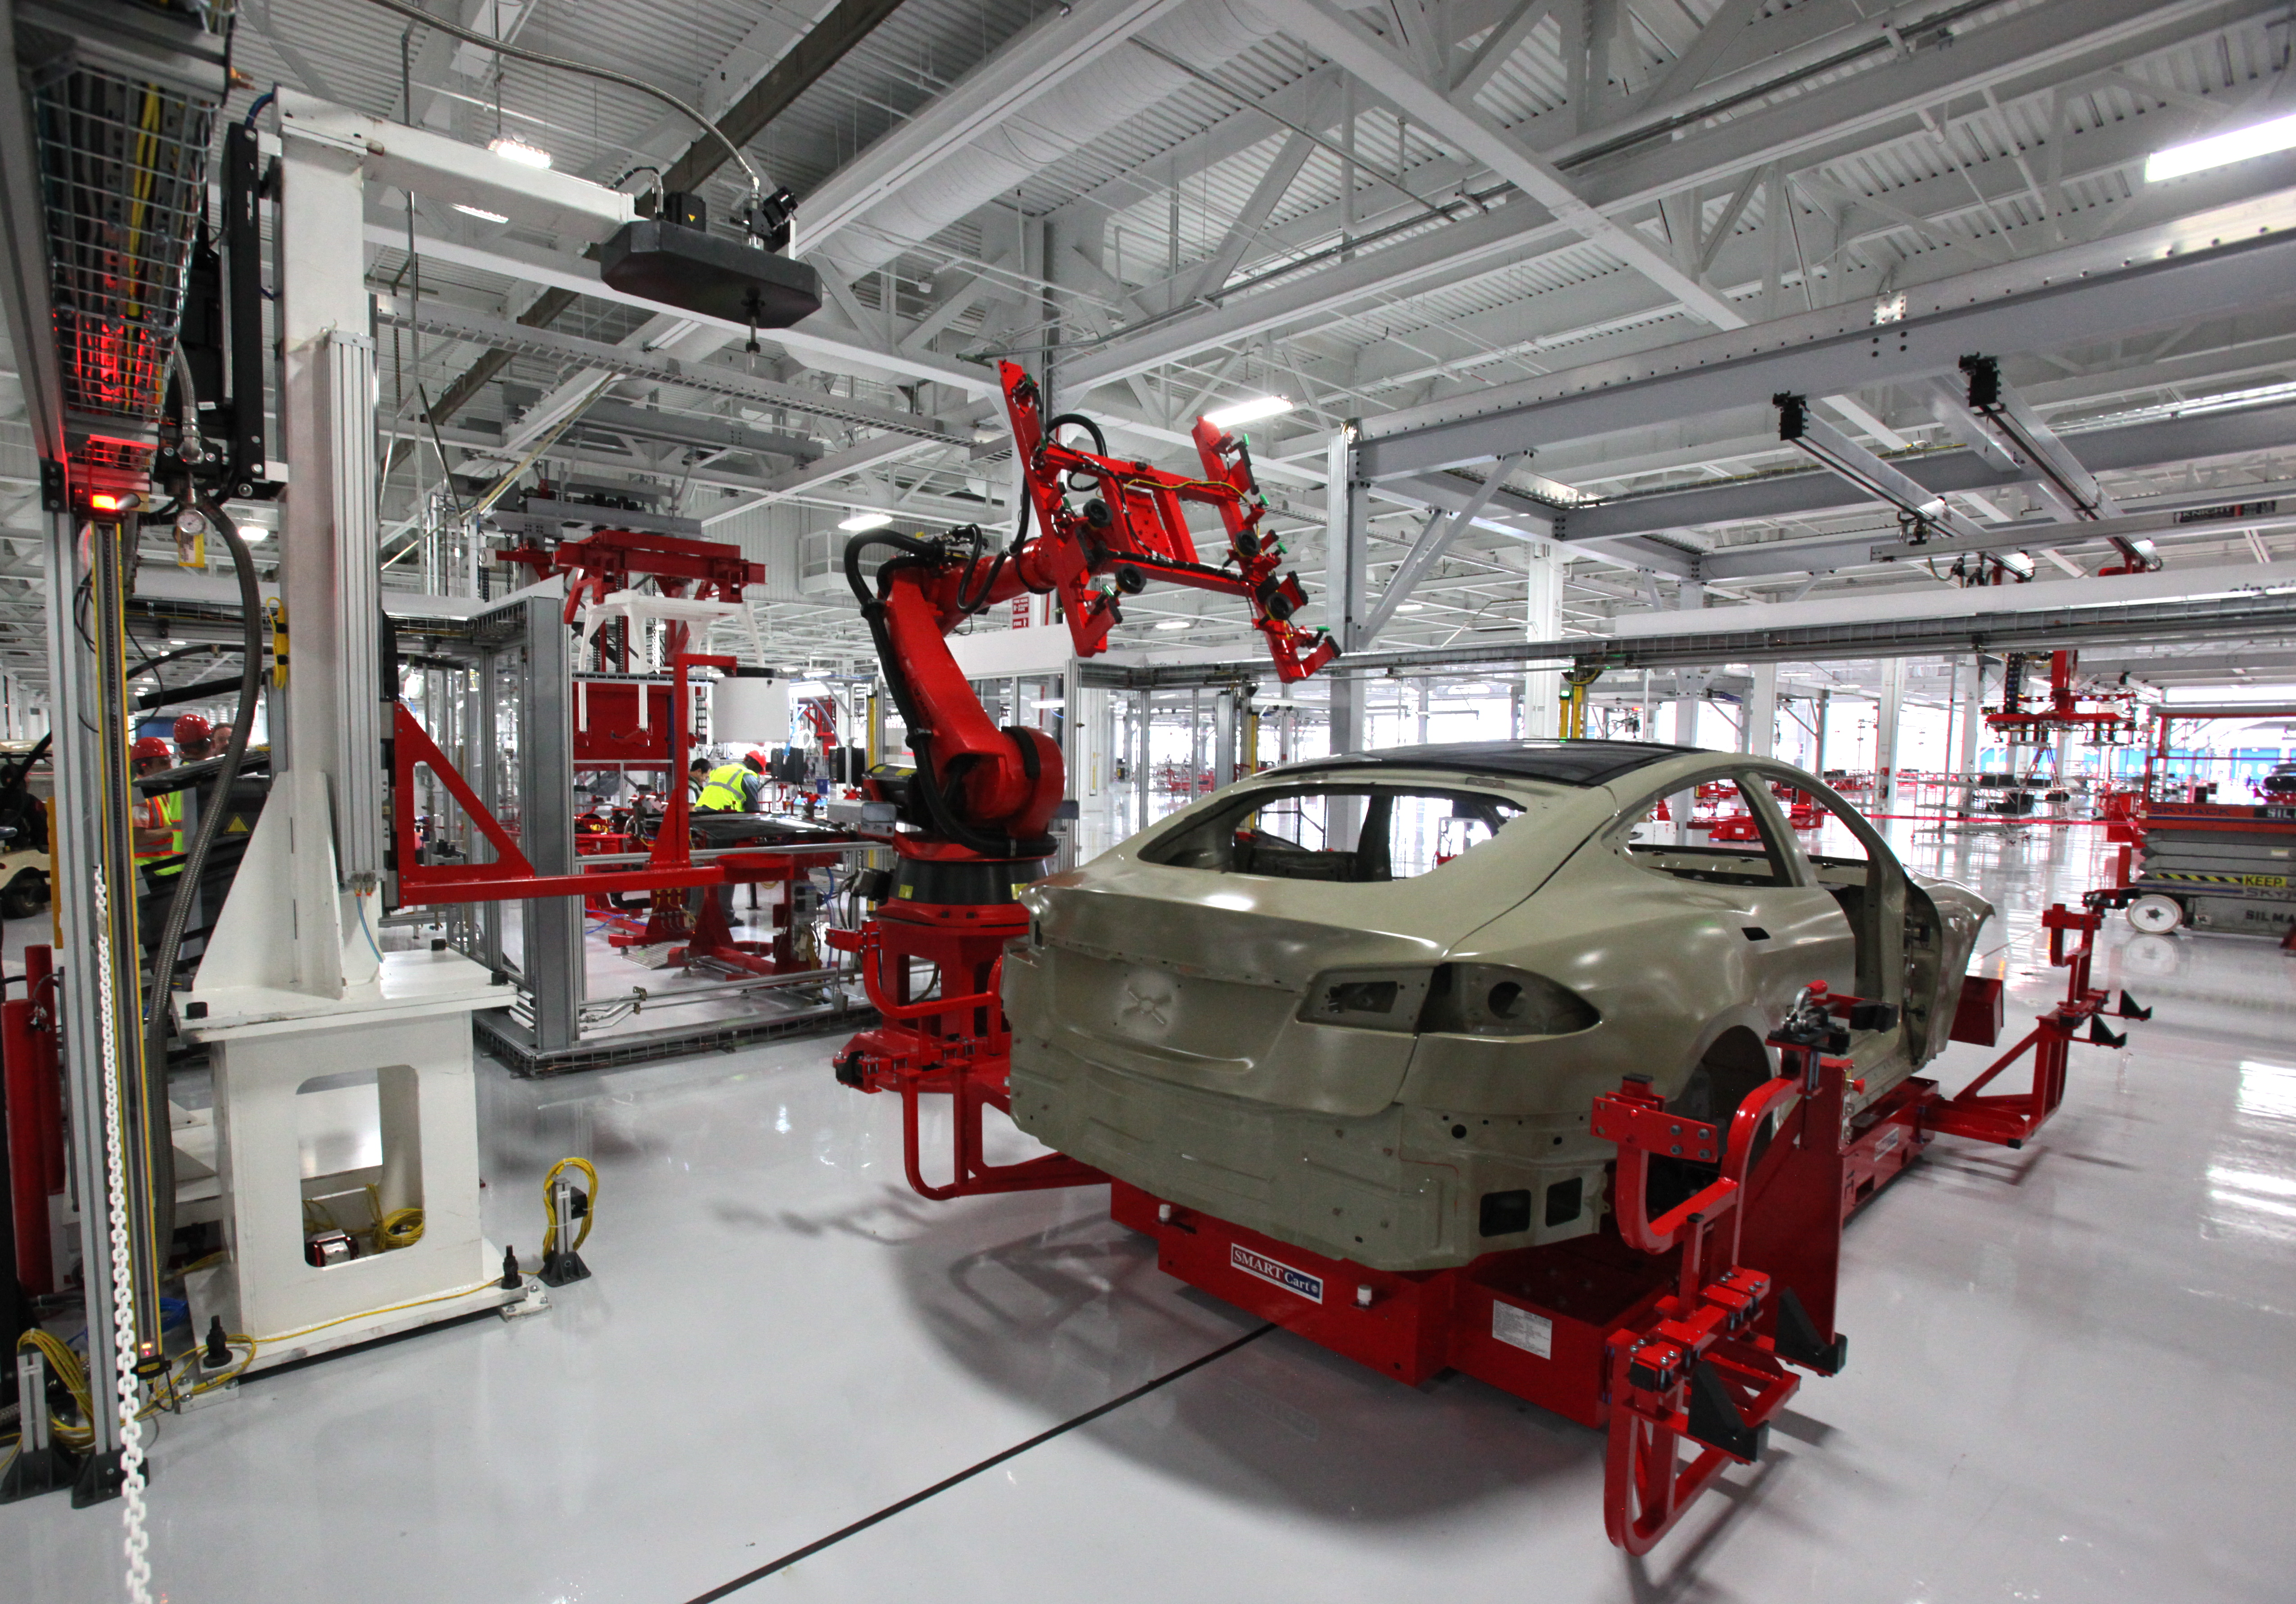 Top Gear is right: UK manufacturing isn't dead